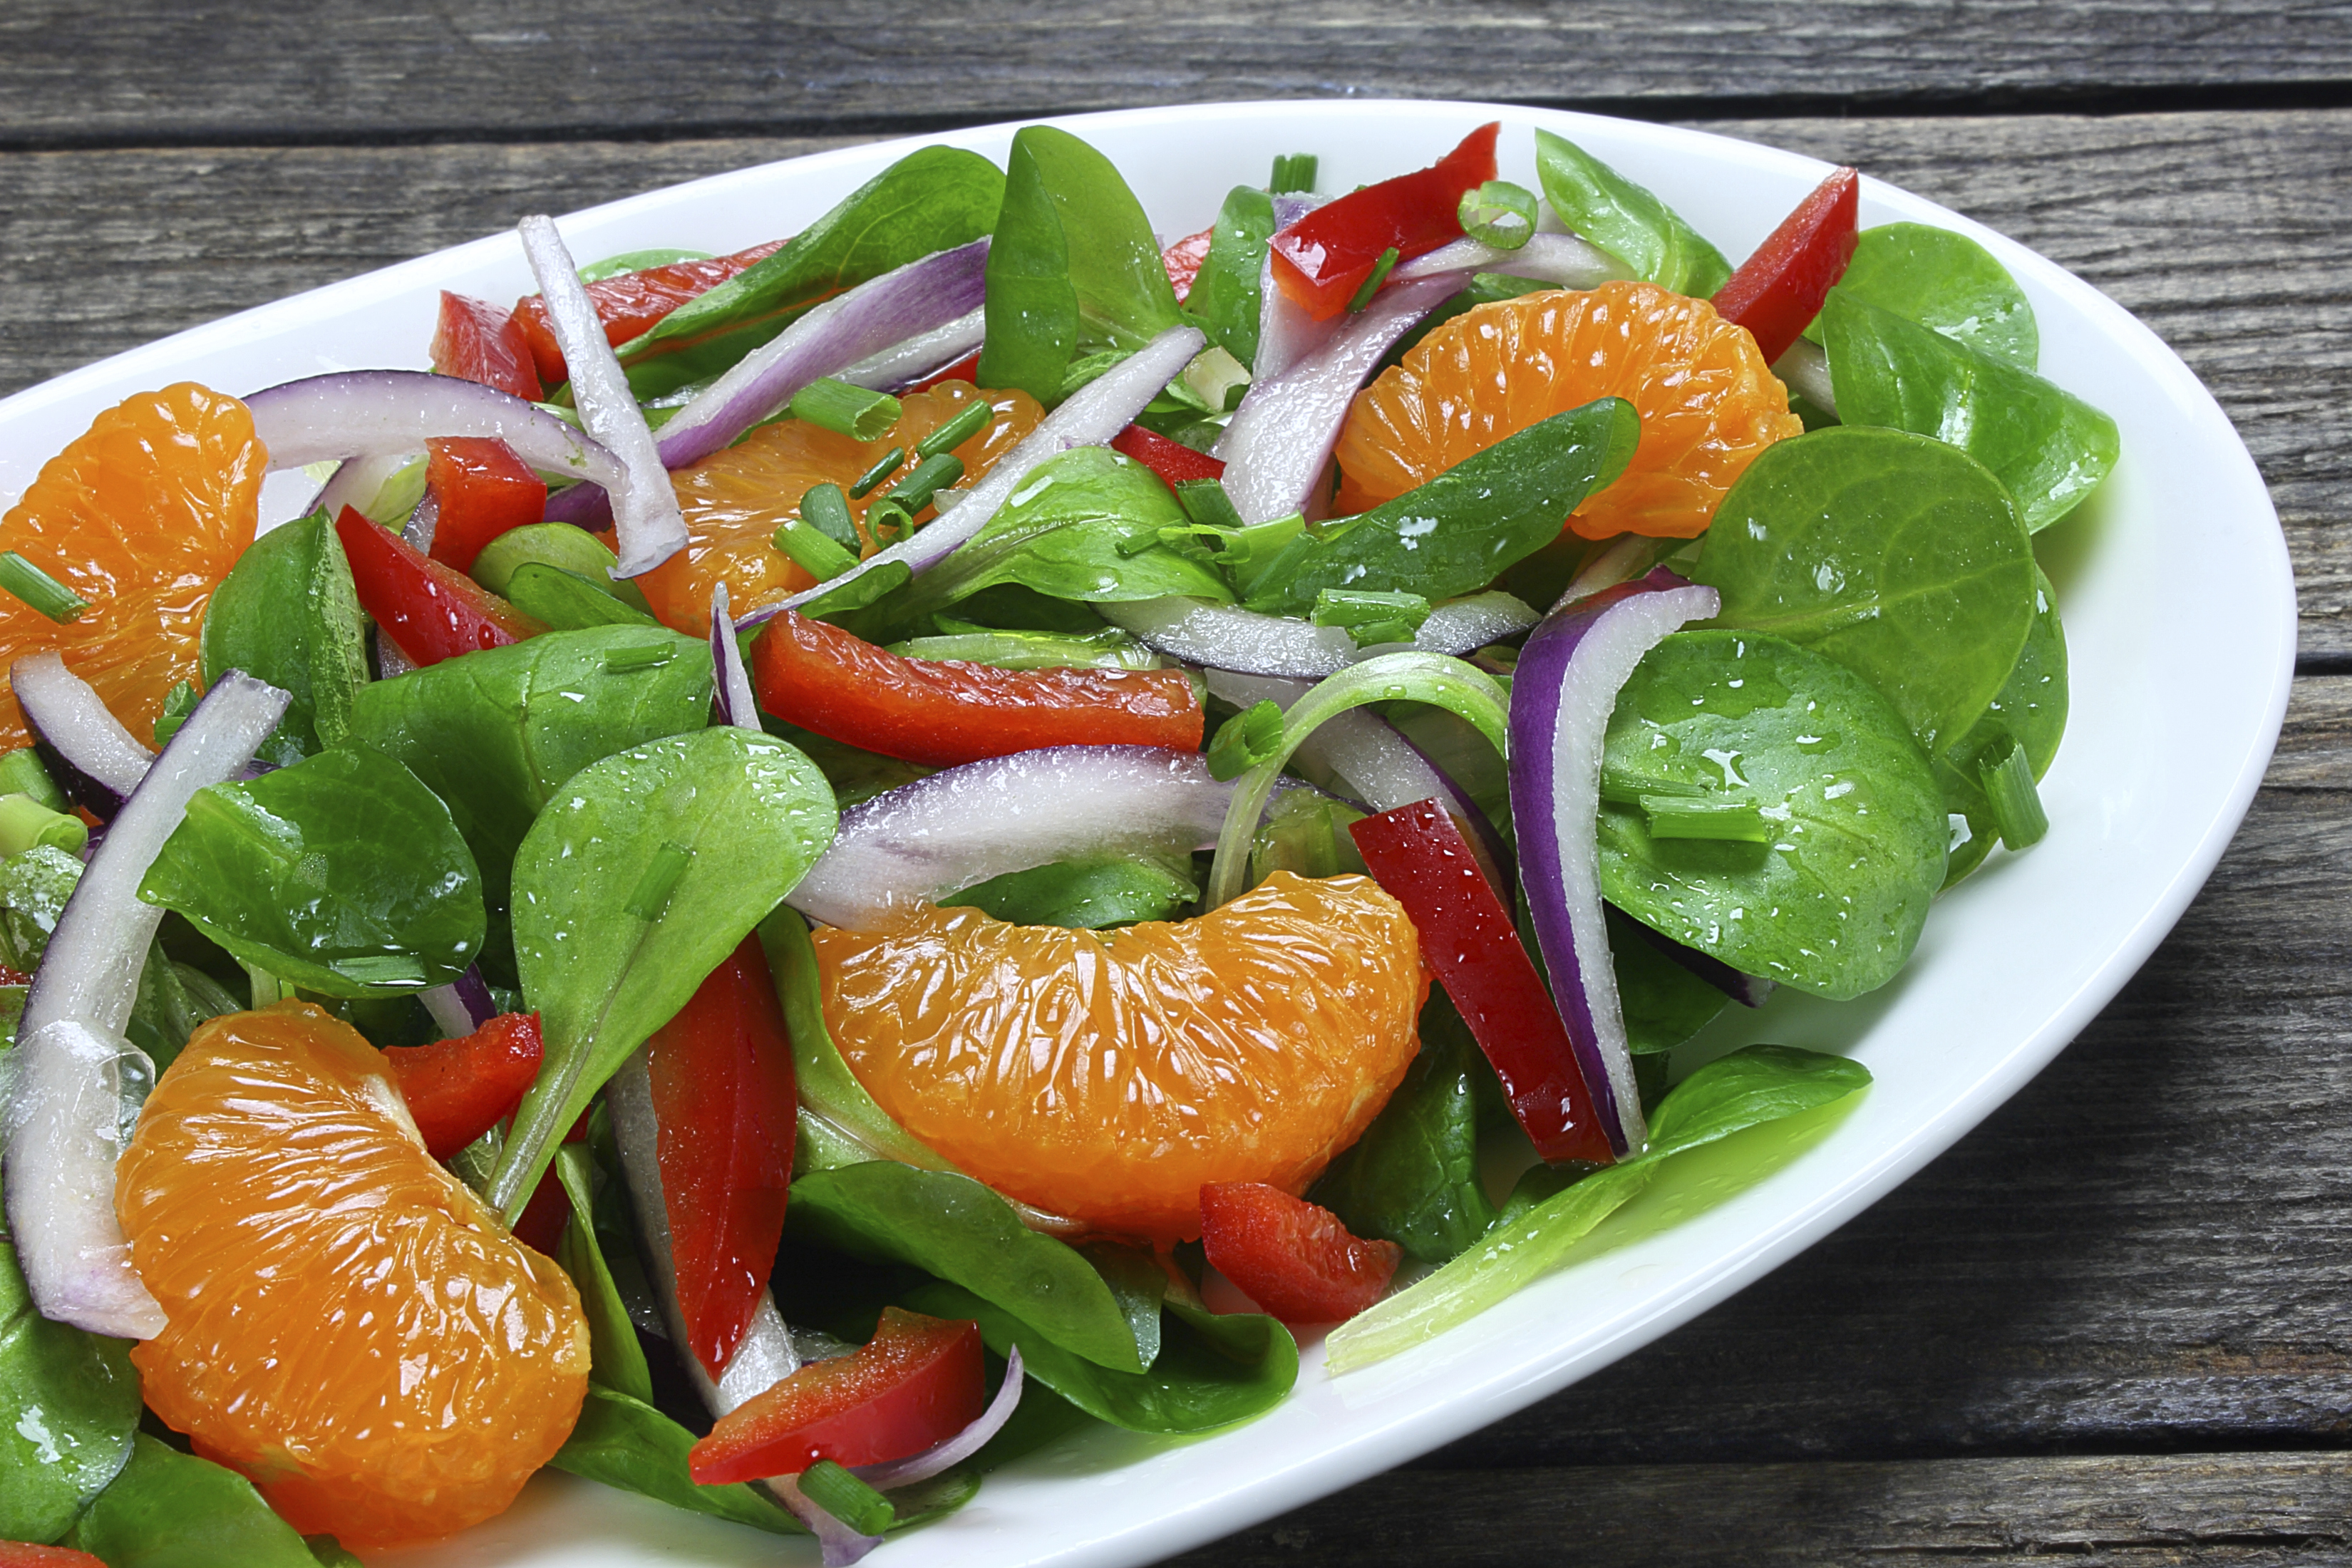 Salad is a great make-ahead lunch!